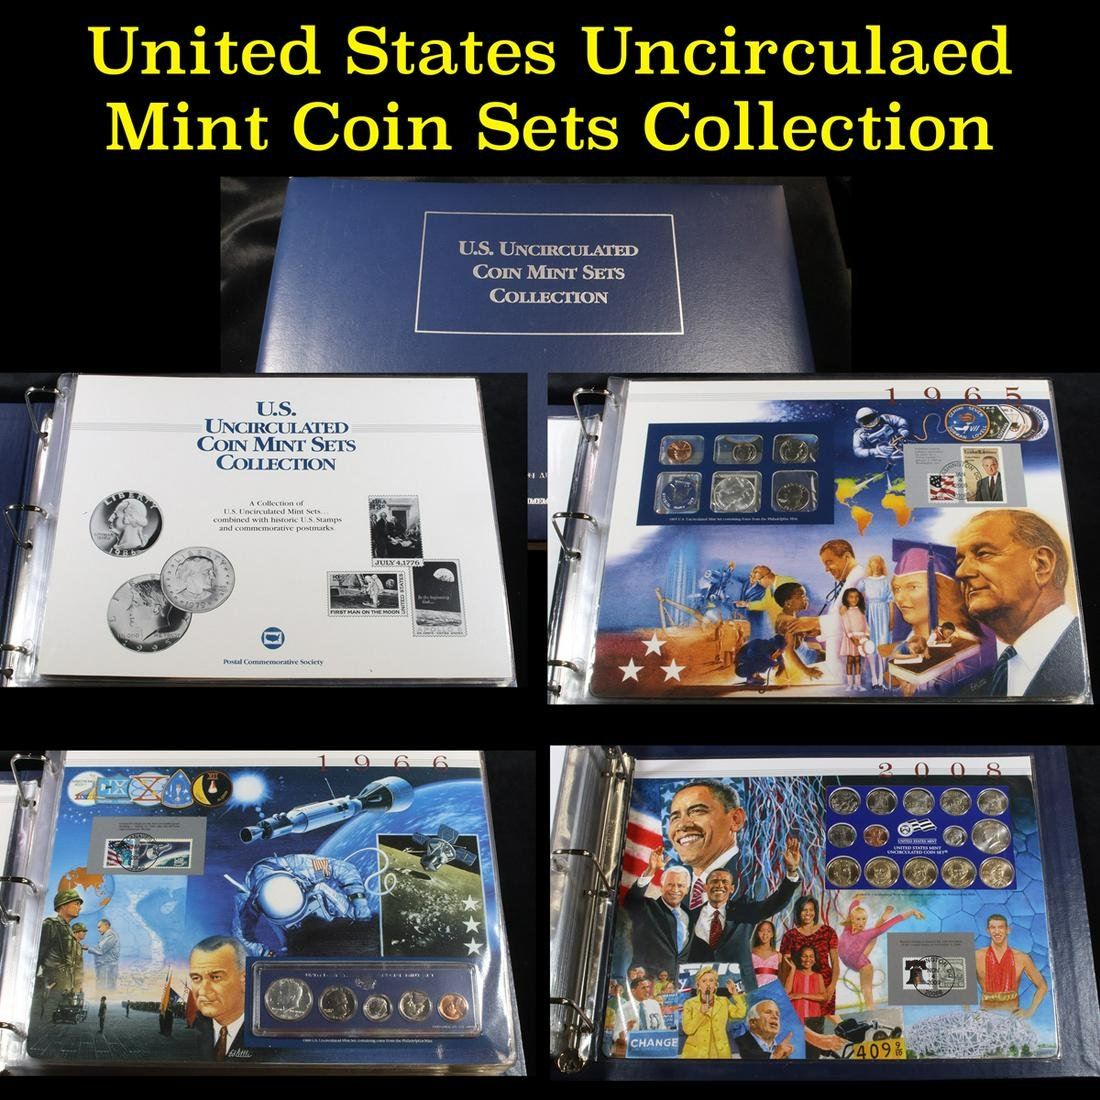 U.S. Uncirculated Coin Mint Sets Collection 1965-2008